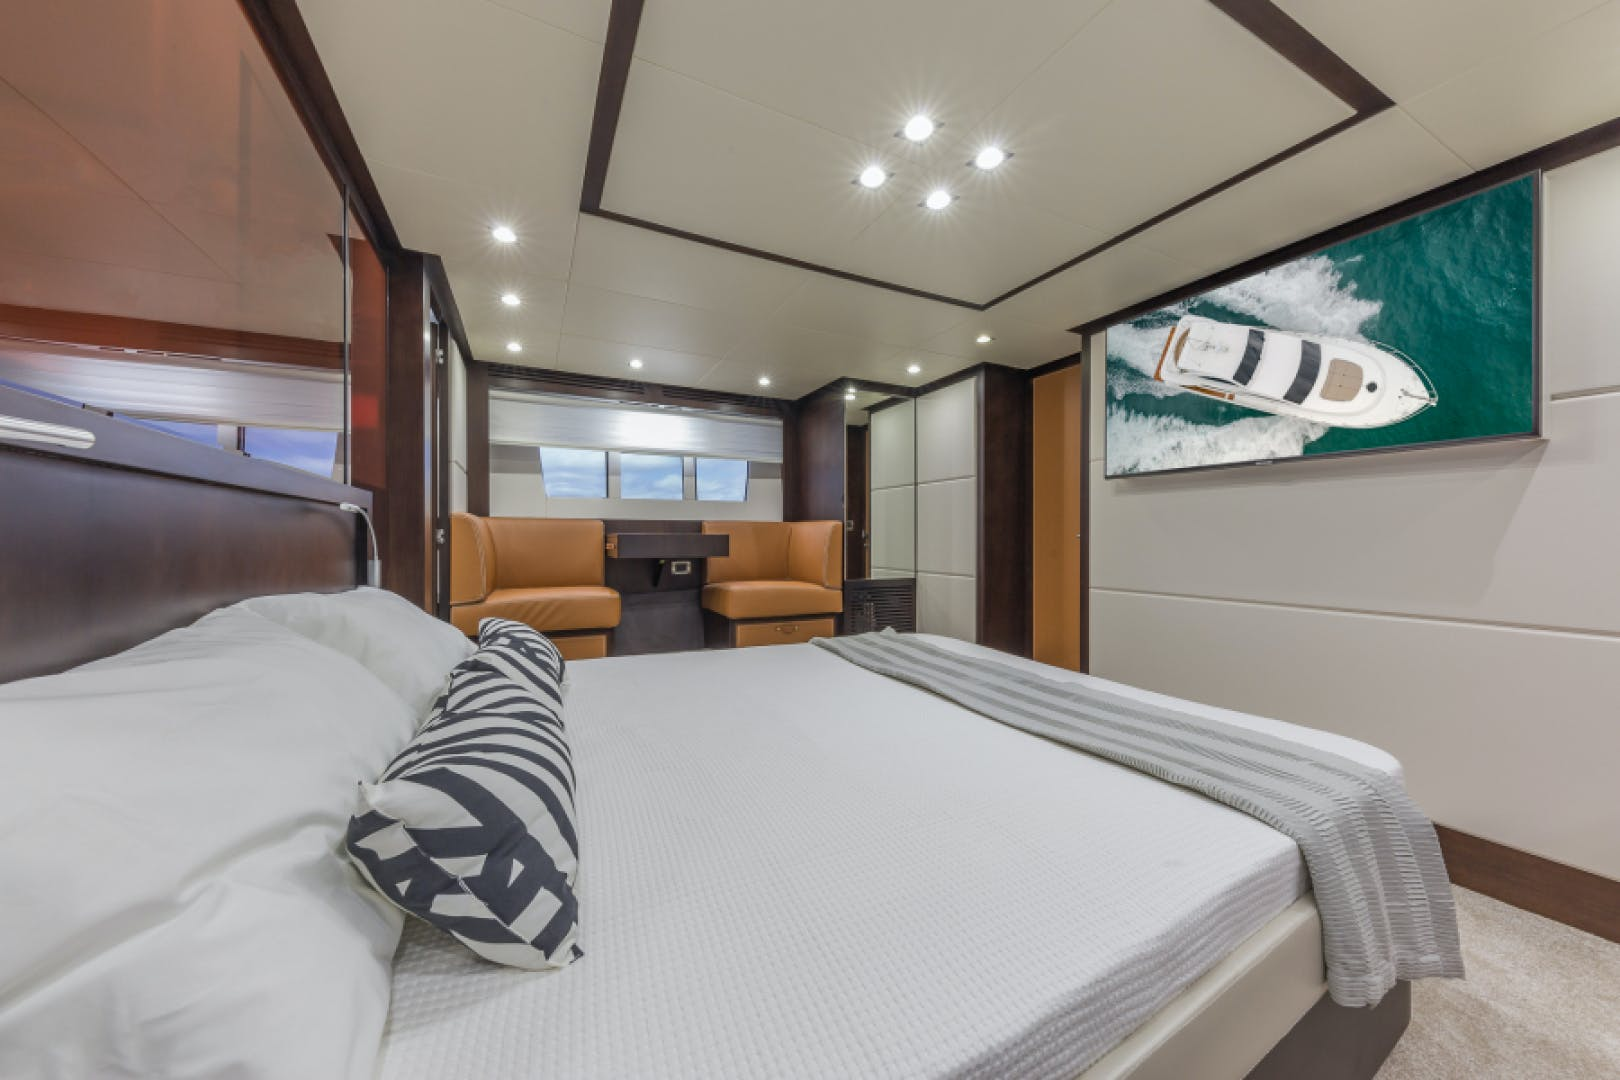 2021 Dyna Yachts 68' 68 Skylounge    Picture 7 of 46